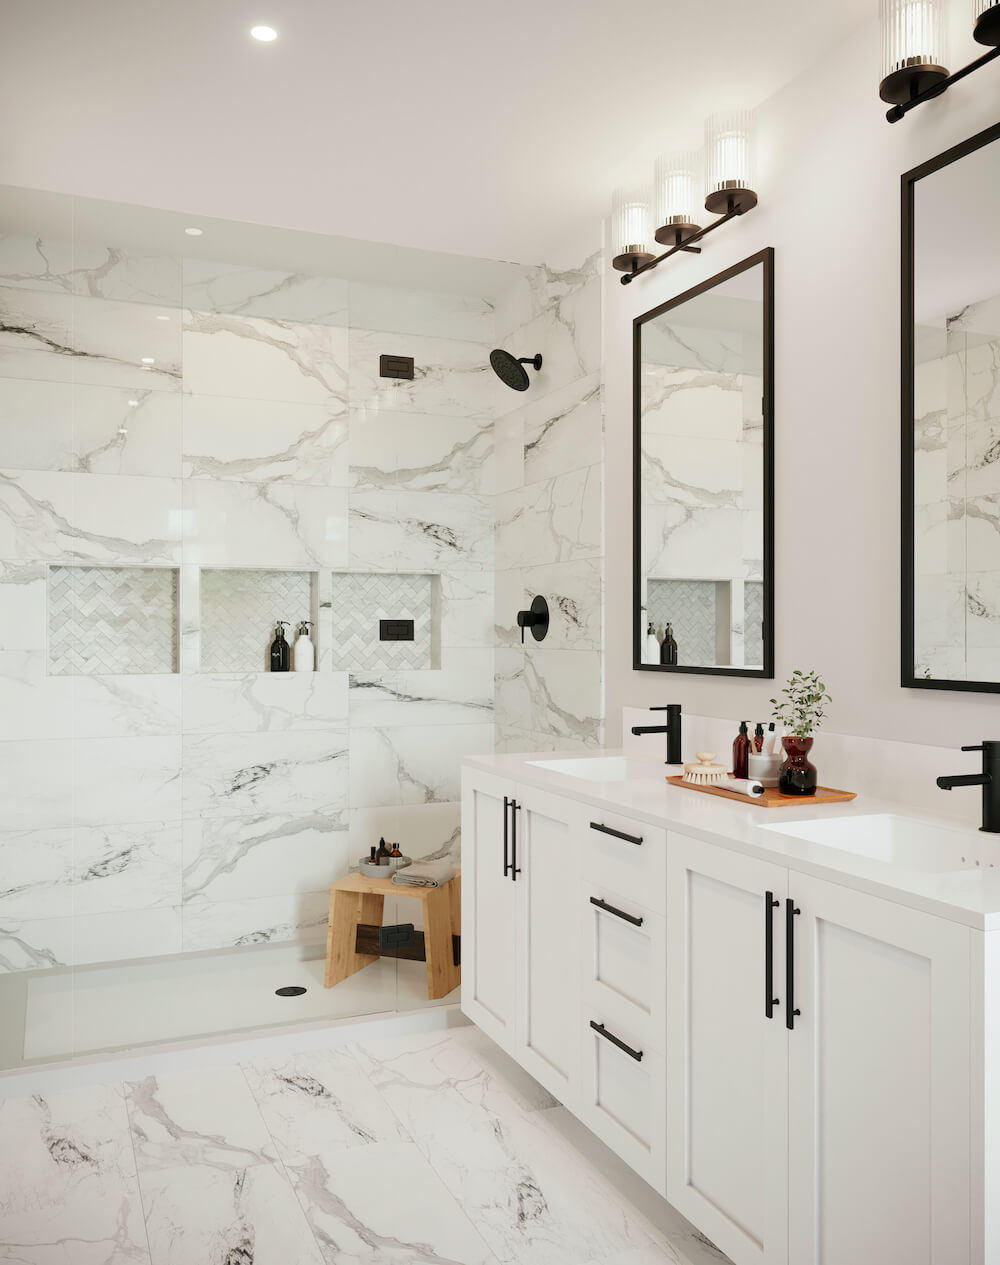 The Robinsons Ensuite